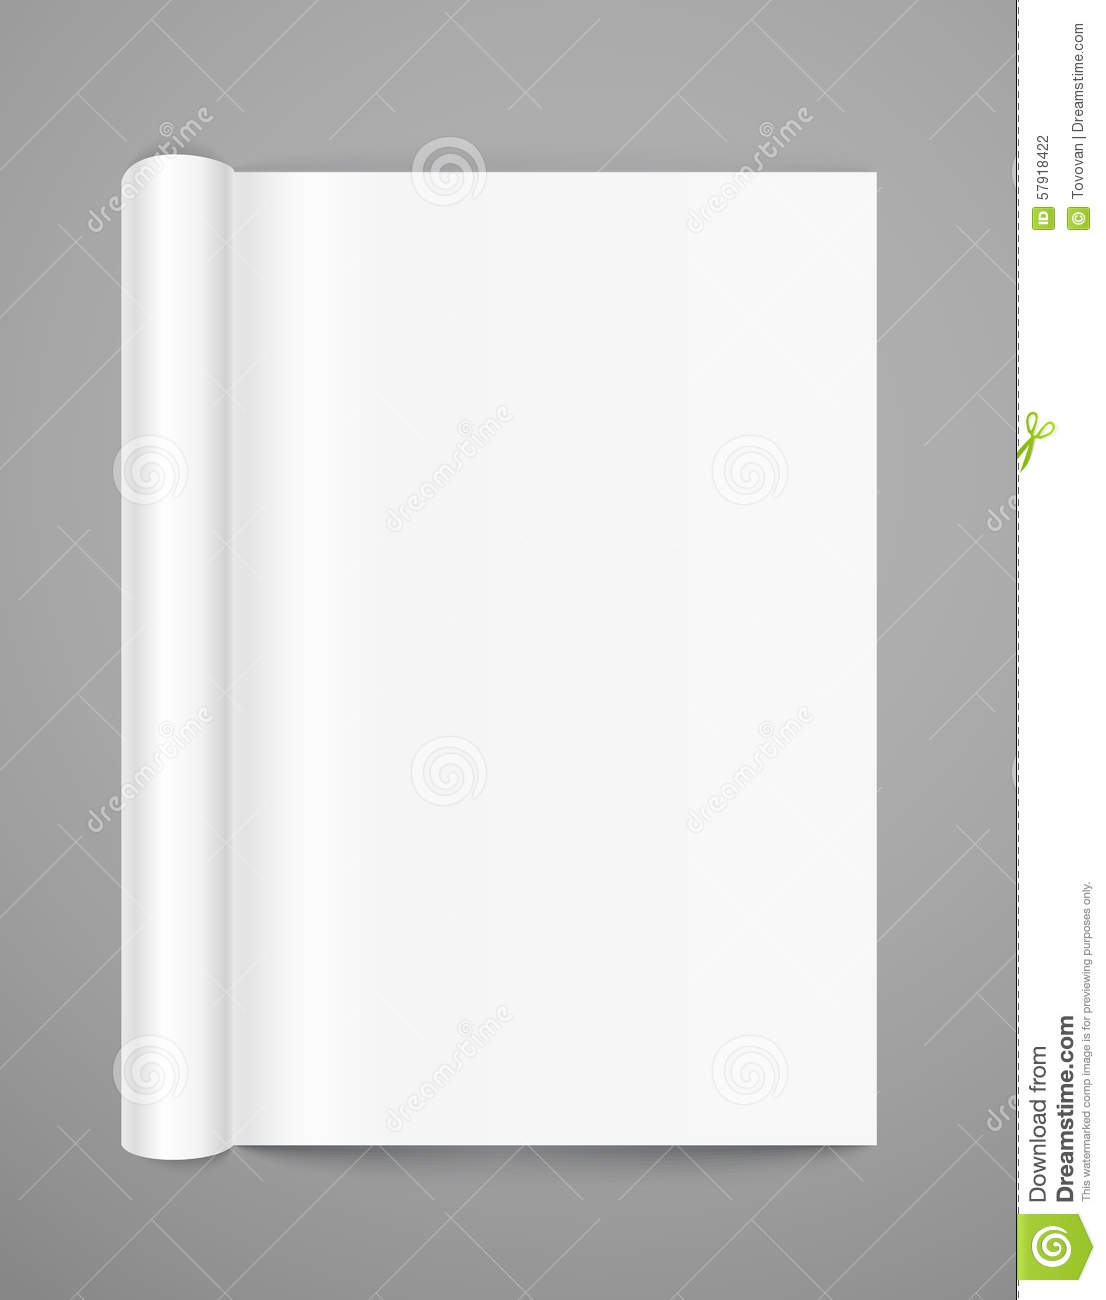 Open Book Page Template Stock Vector - Image: 57918422